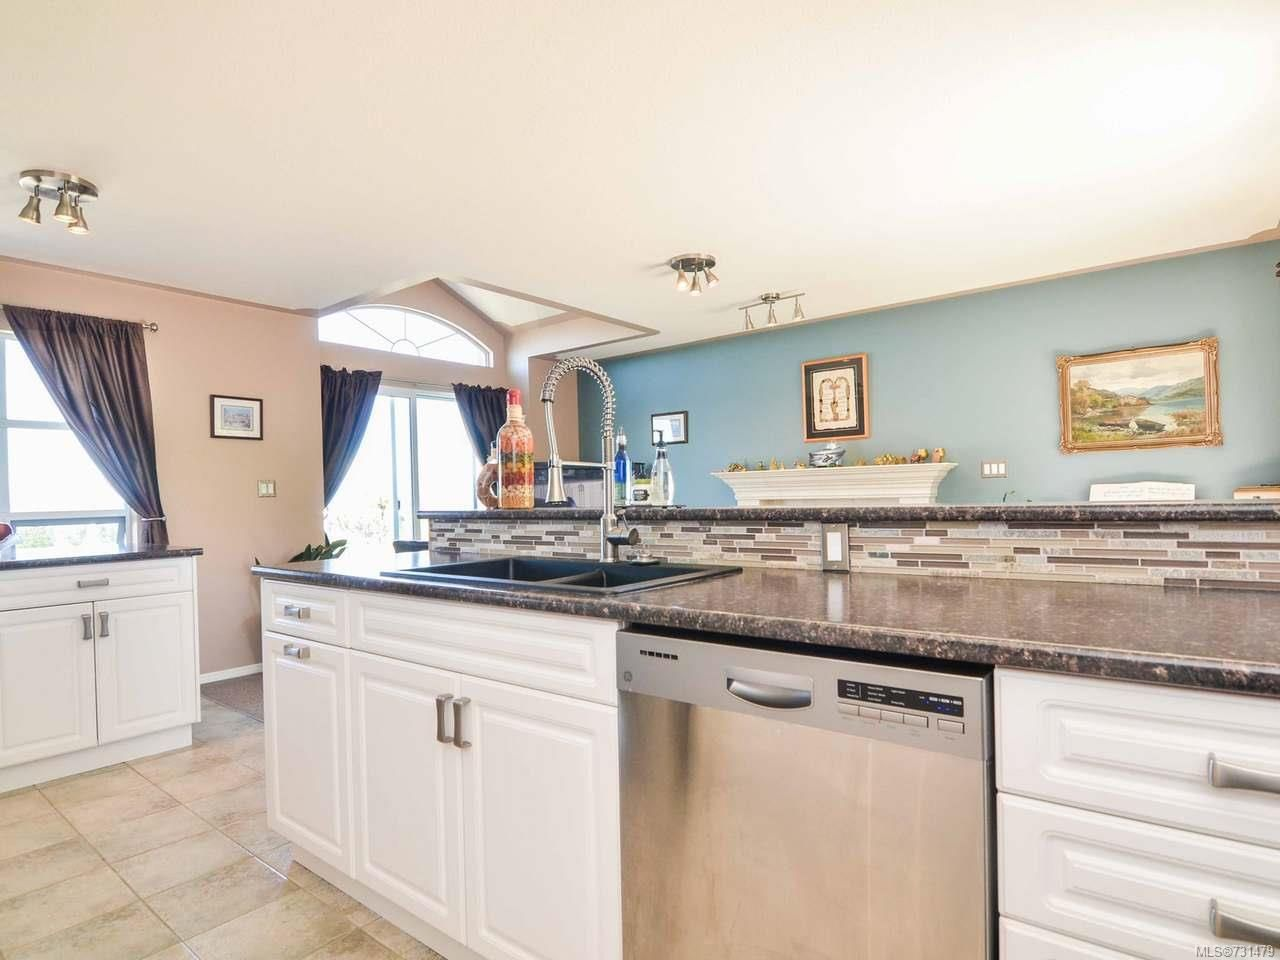 Photo 15: Photos: 753 Bowen Dr in CAMPBELL RIVER: CR Willow Point House for sale (Campbell River)  : MLS®# 731479